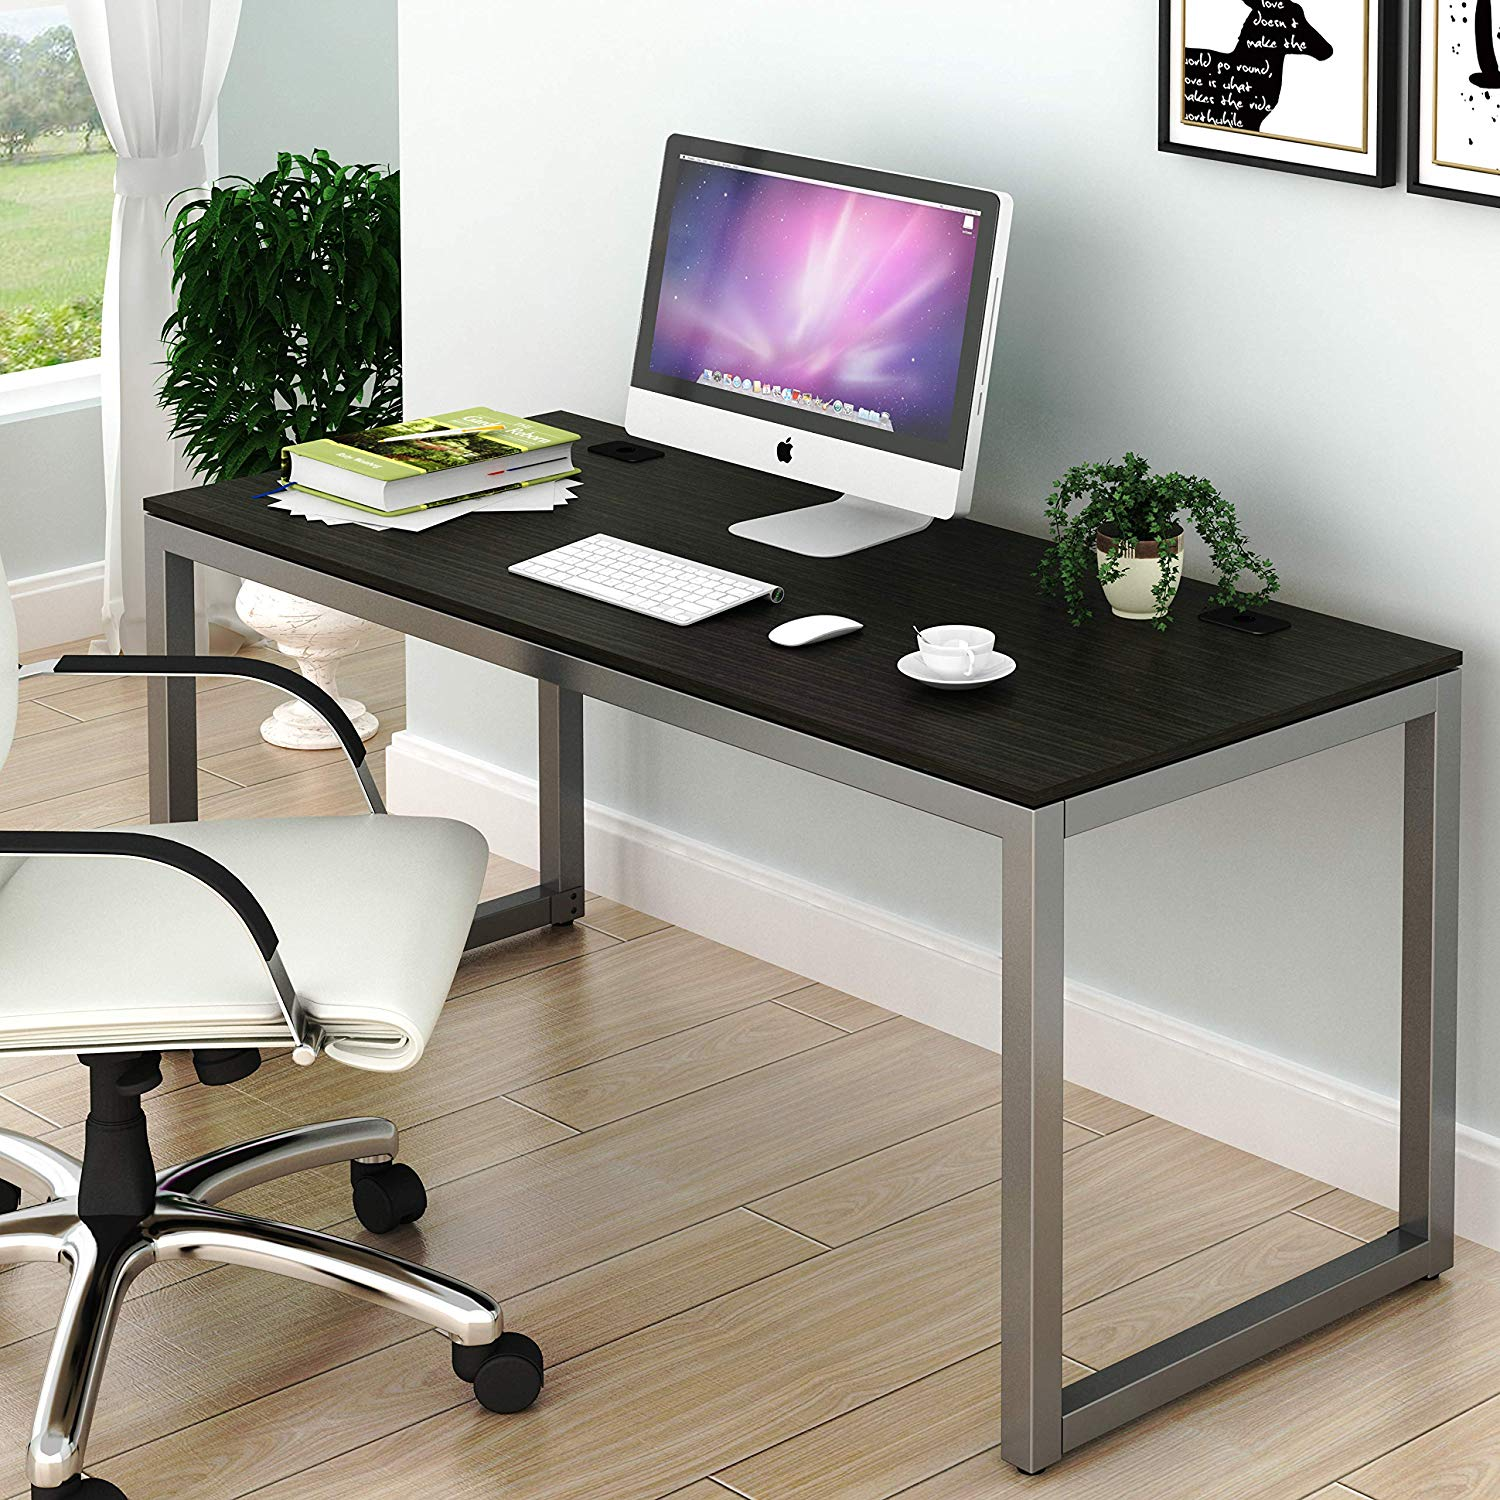 Home Office 55-Inch Large Computer Desk, Espresso